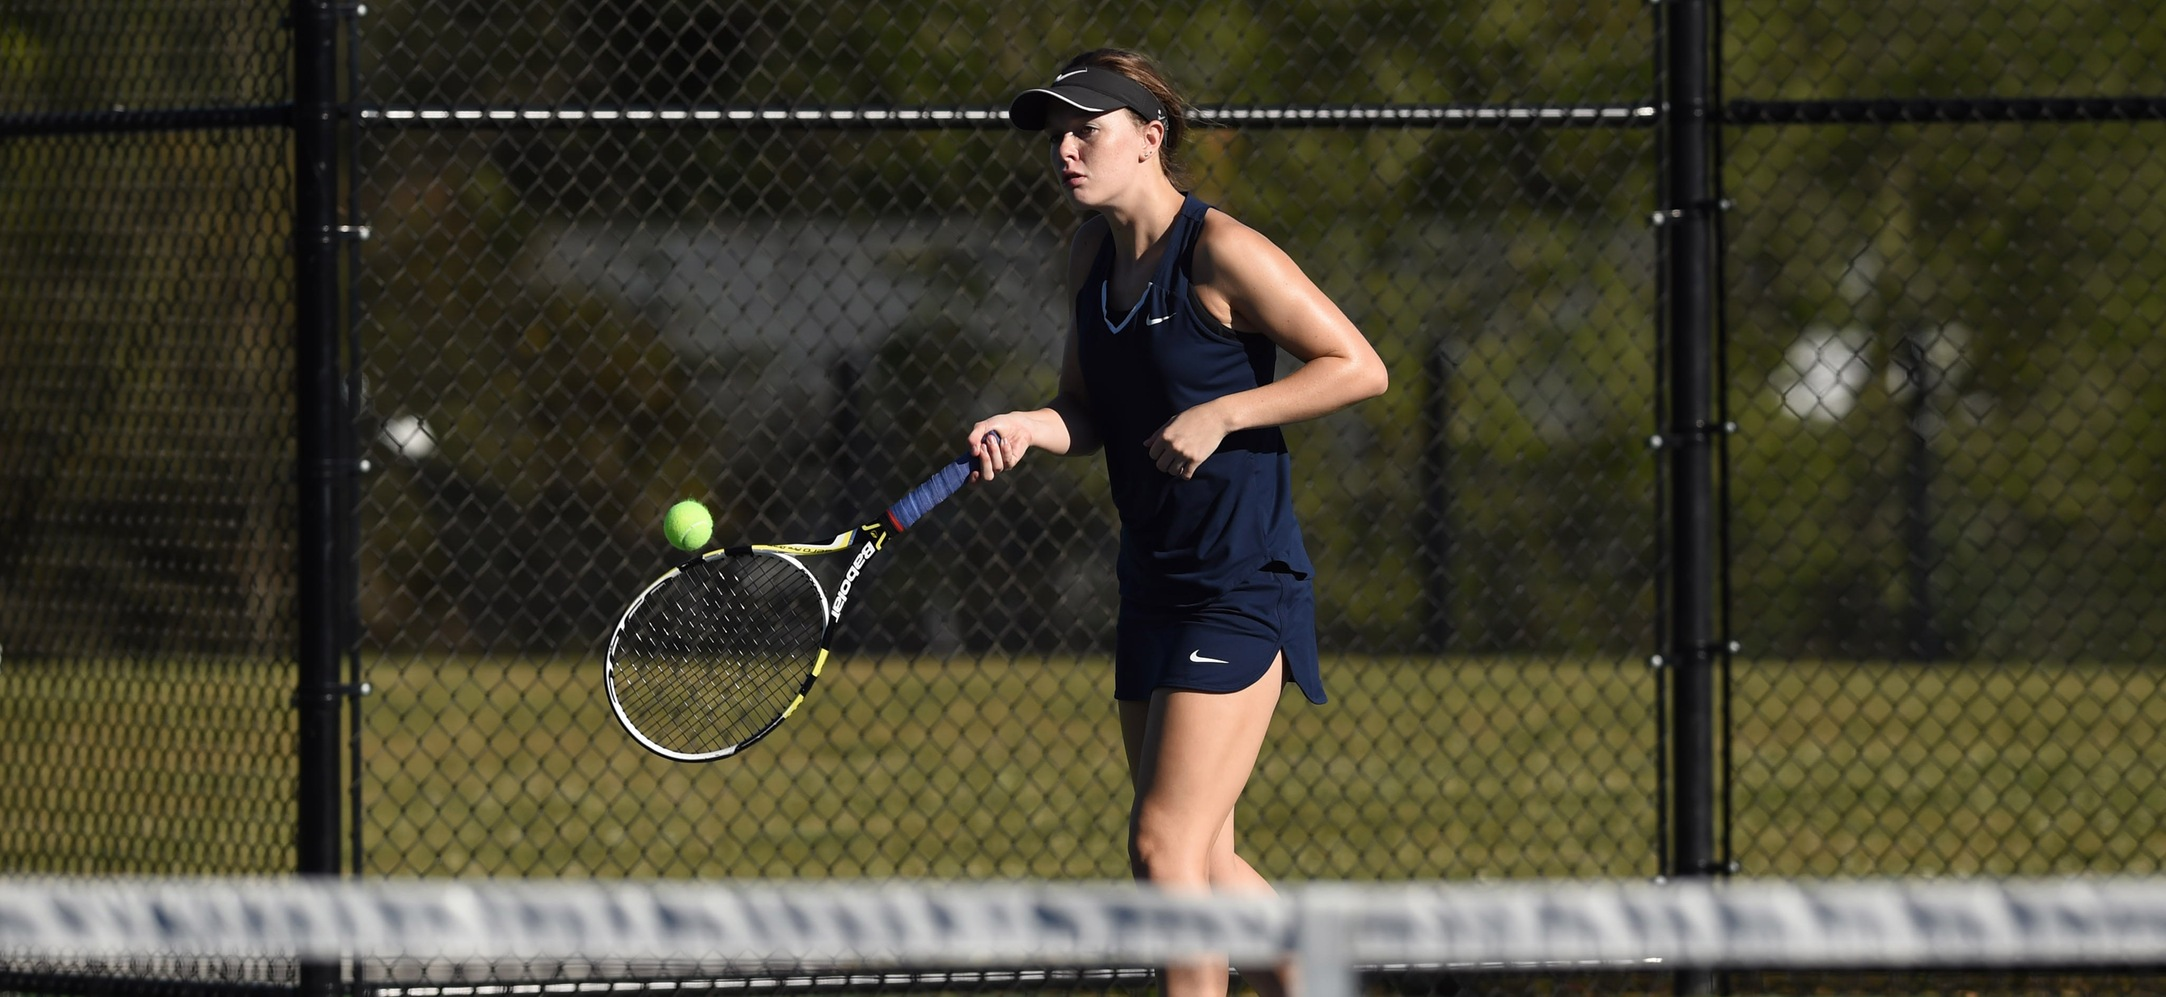 Savannah Bailey earned a win at second singles.